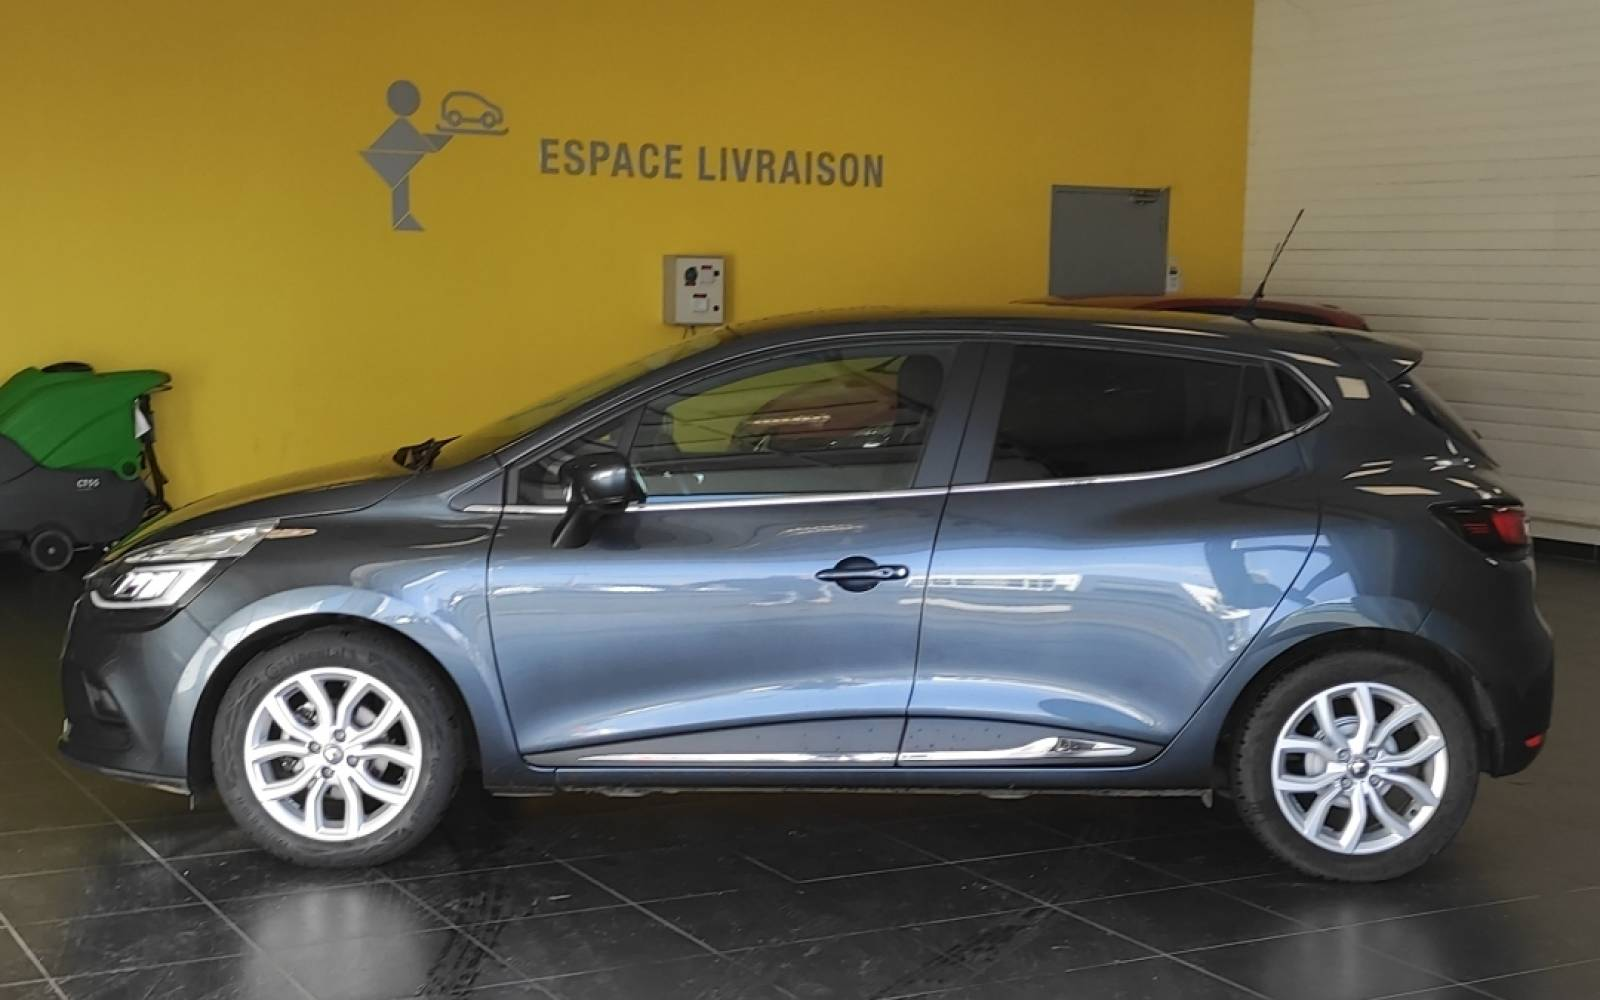 RENAULT Clio TCe 90 Energy - véhicule d'occasion - Site Internet Faurie - Sarda - 24750 - Trelissac - 5